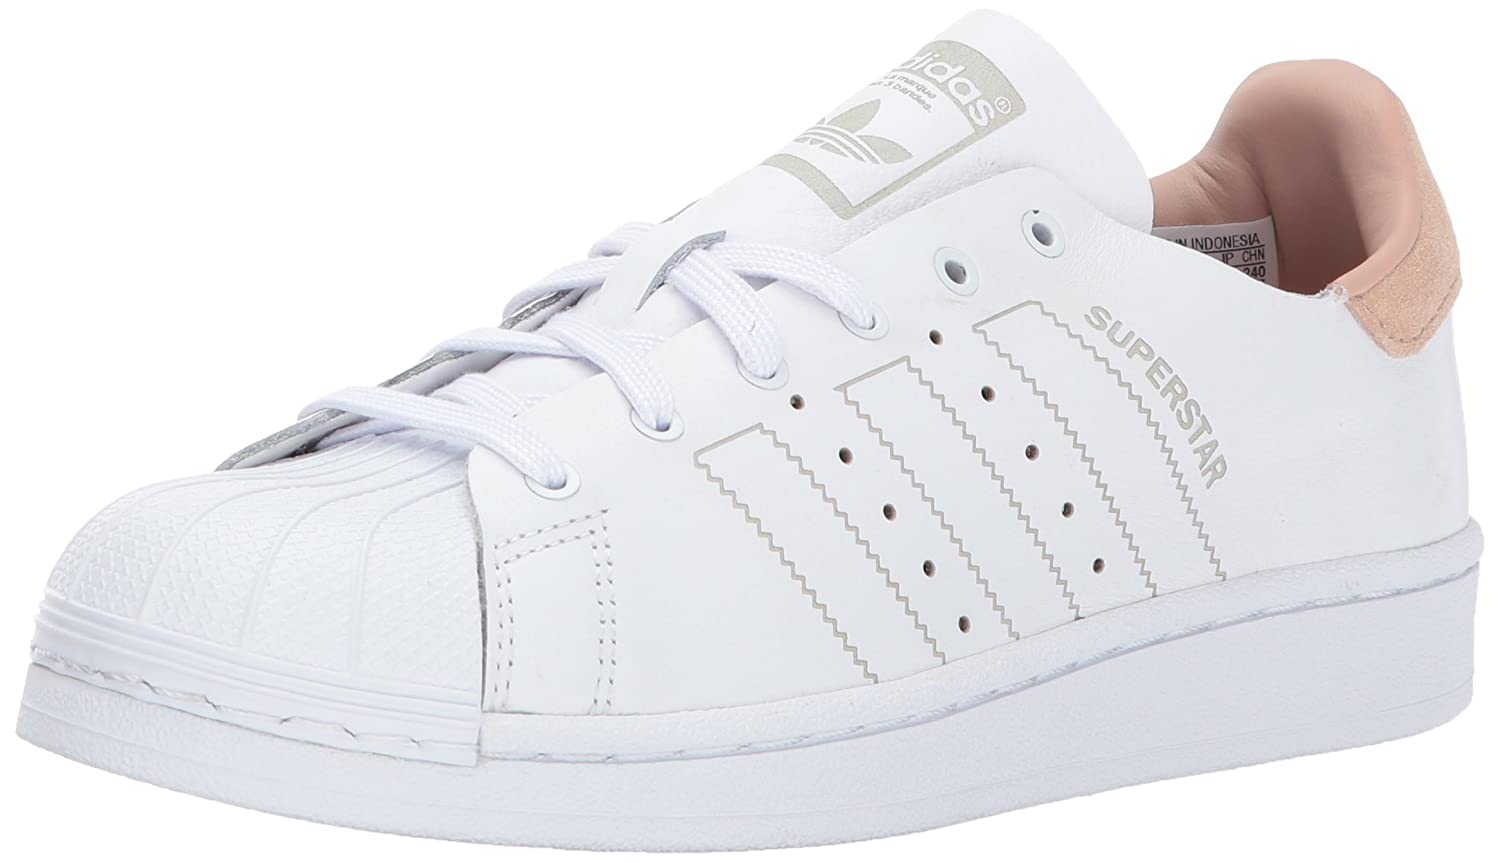 adidas Originals Women's Superstar Decon Shoes B01N2TZAFJ 8 M US|White/White/White